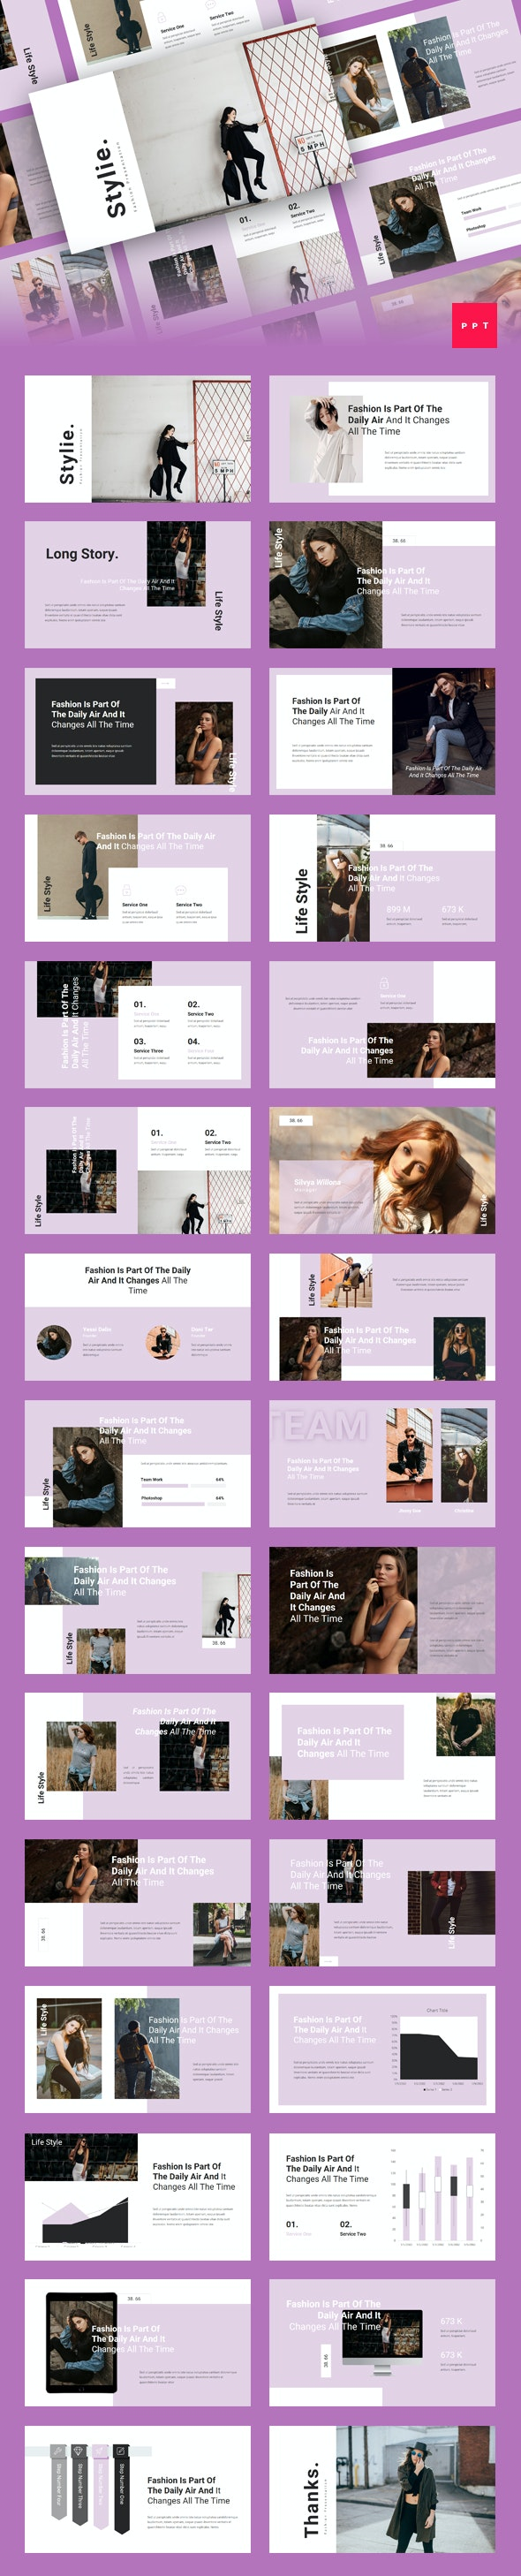 Stylie - Fashion PowerPoint Template - Creative PowerPoint Templates